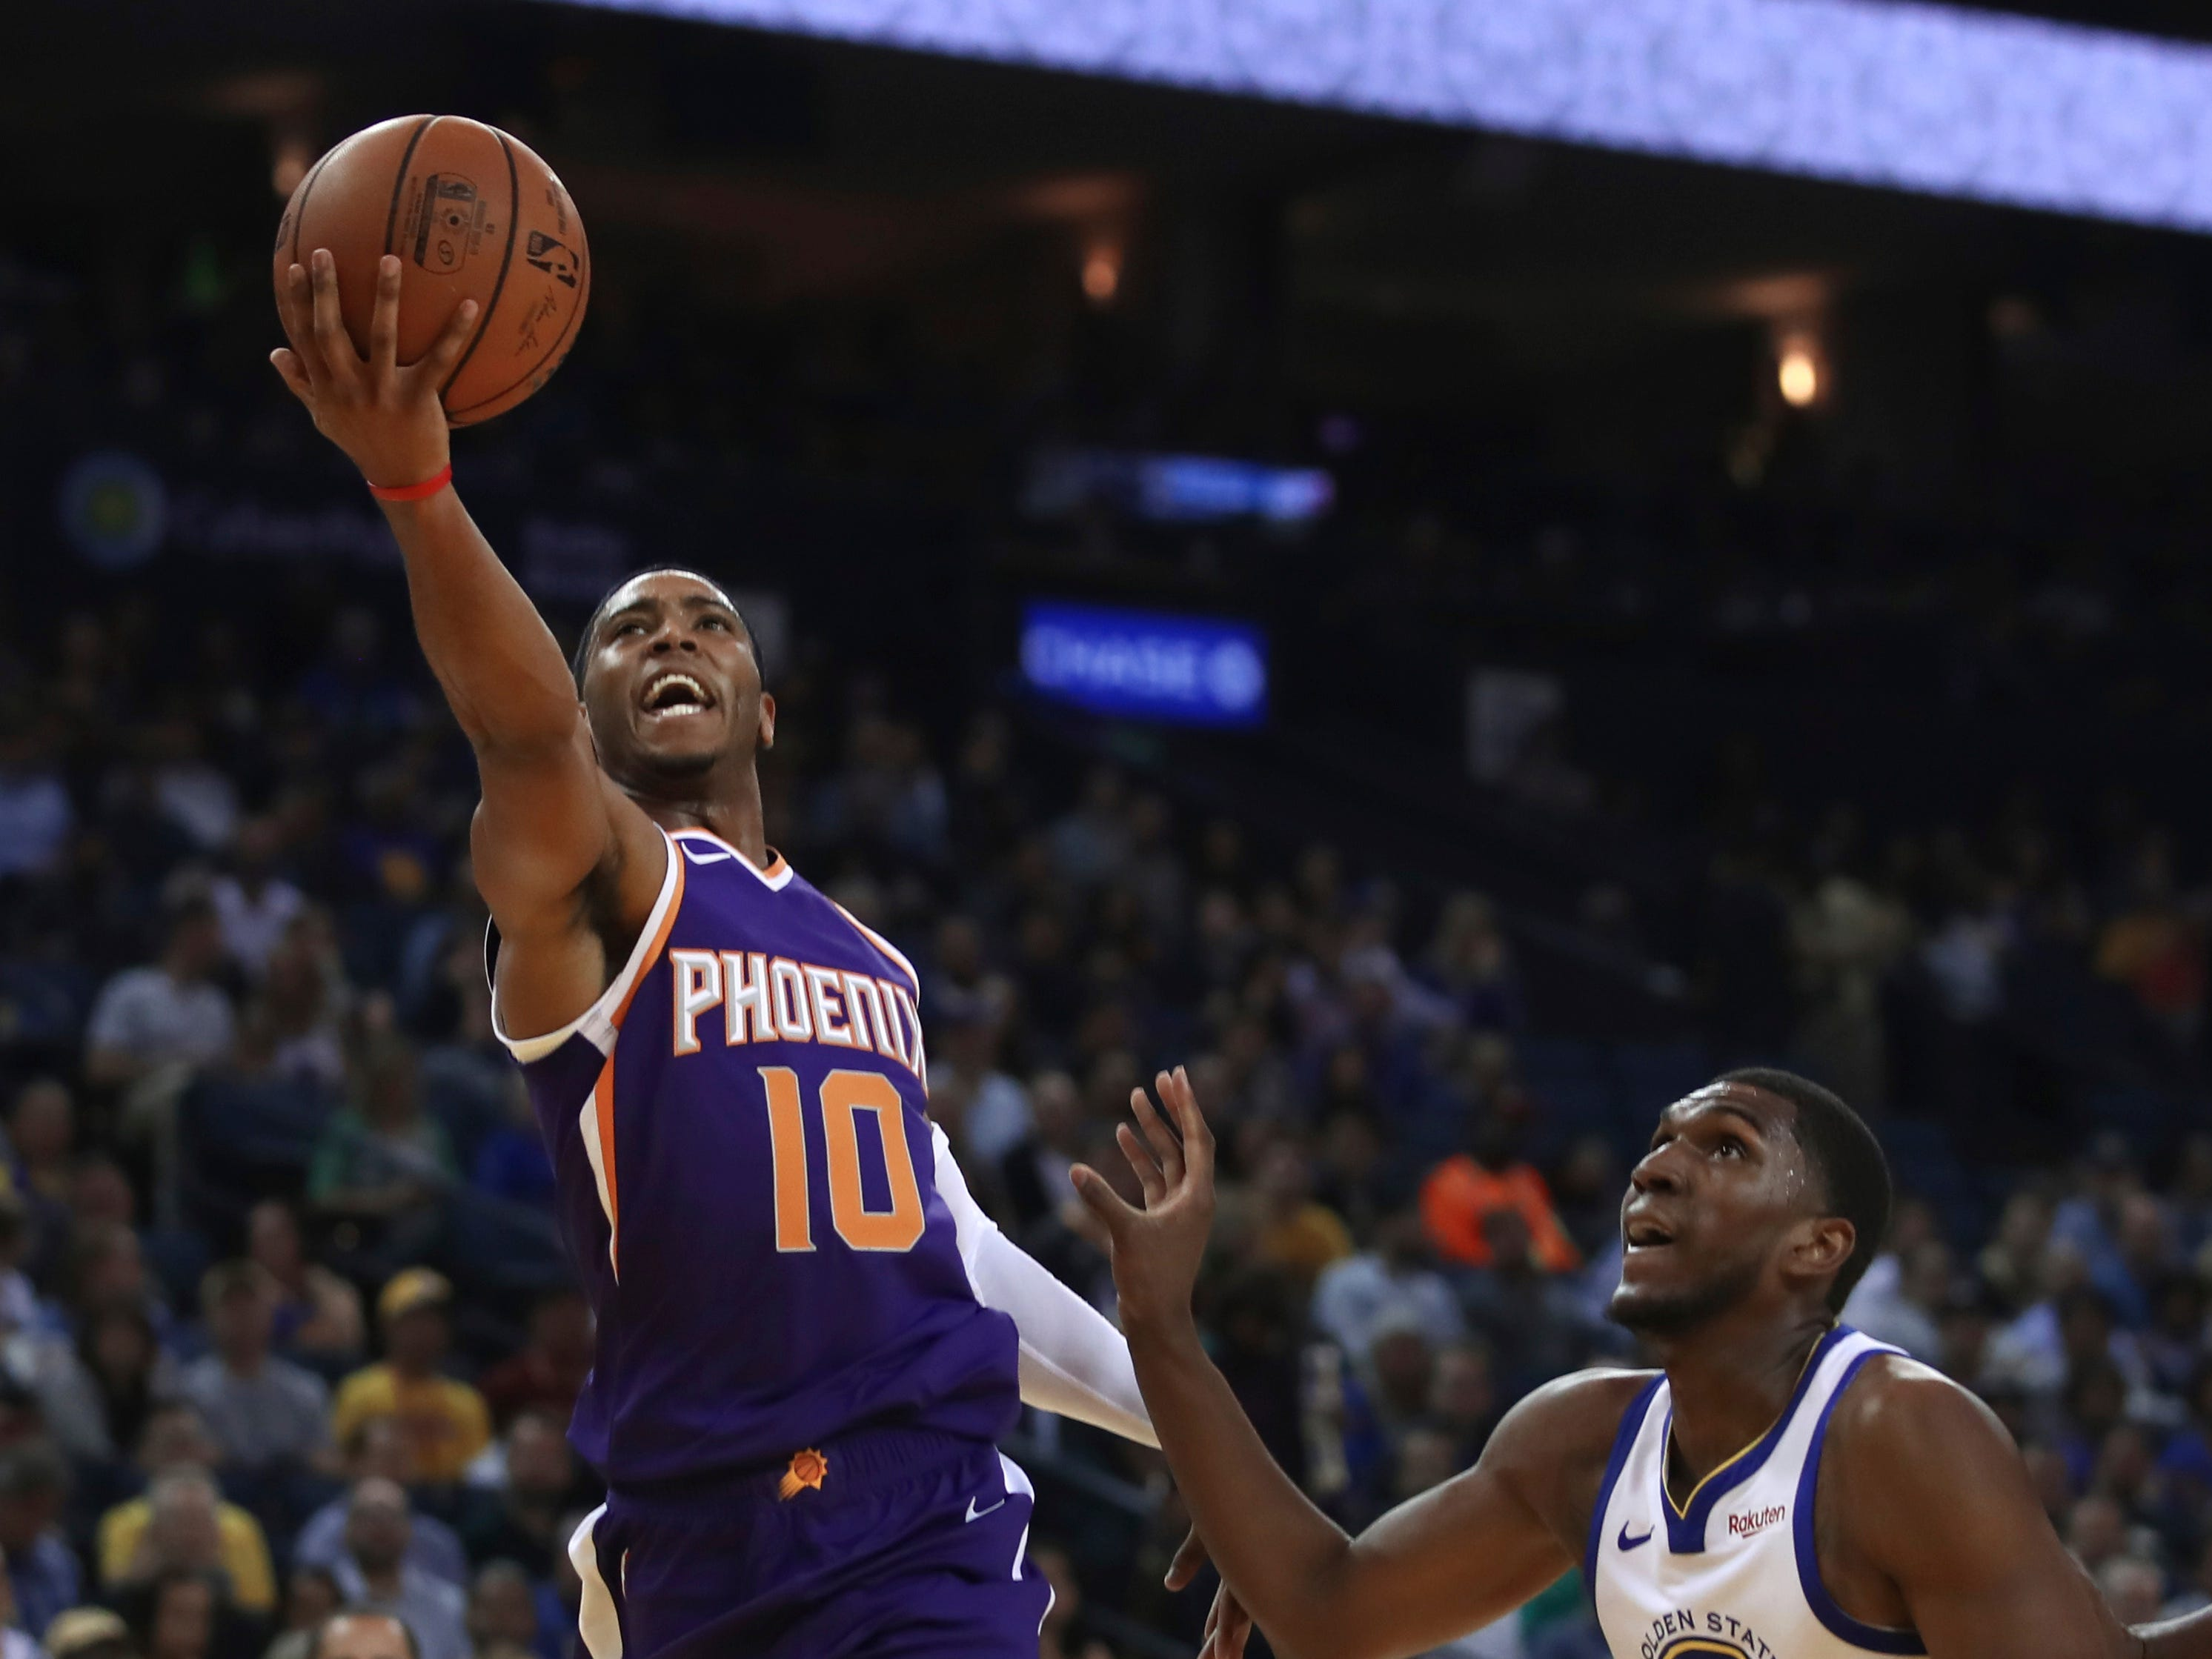 Phoenix Suns' Shaquille Harrison, left, lays up a shot past Golden State Warriors' Kevon Looney (5) during the first half of a preseason NBA basketball game Monday, Oct. 8, 2018, in Oakland, Calif.